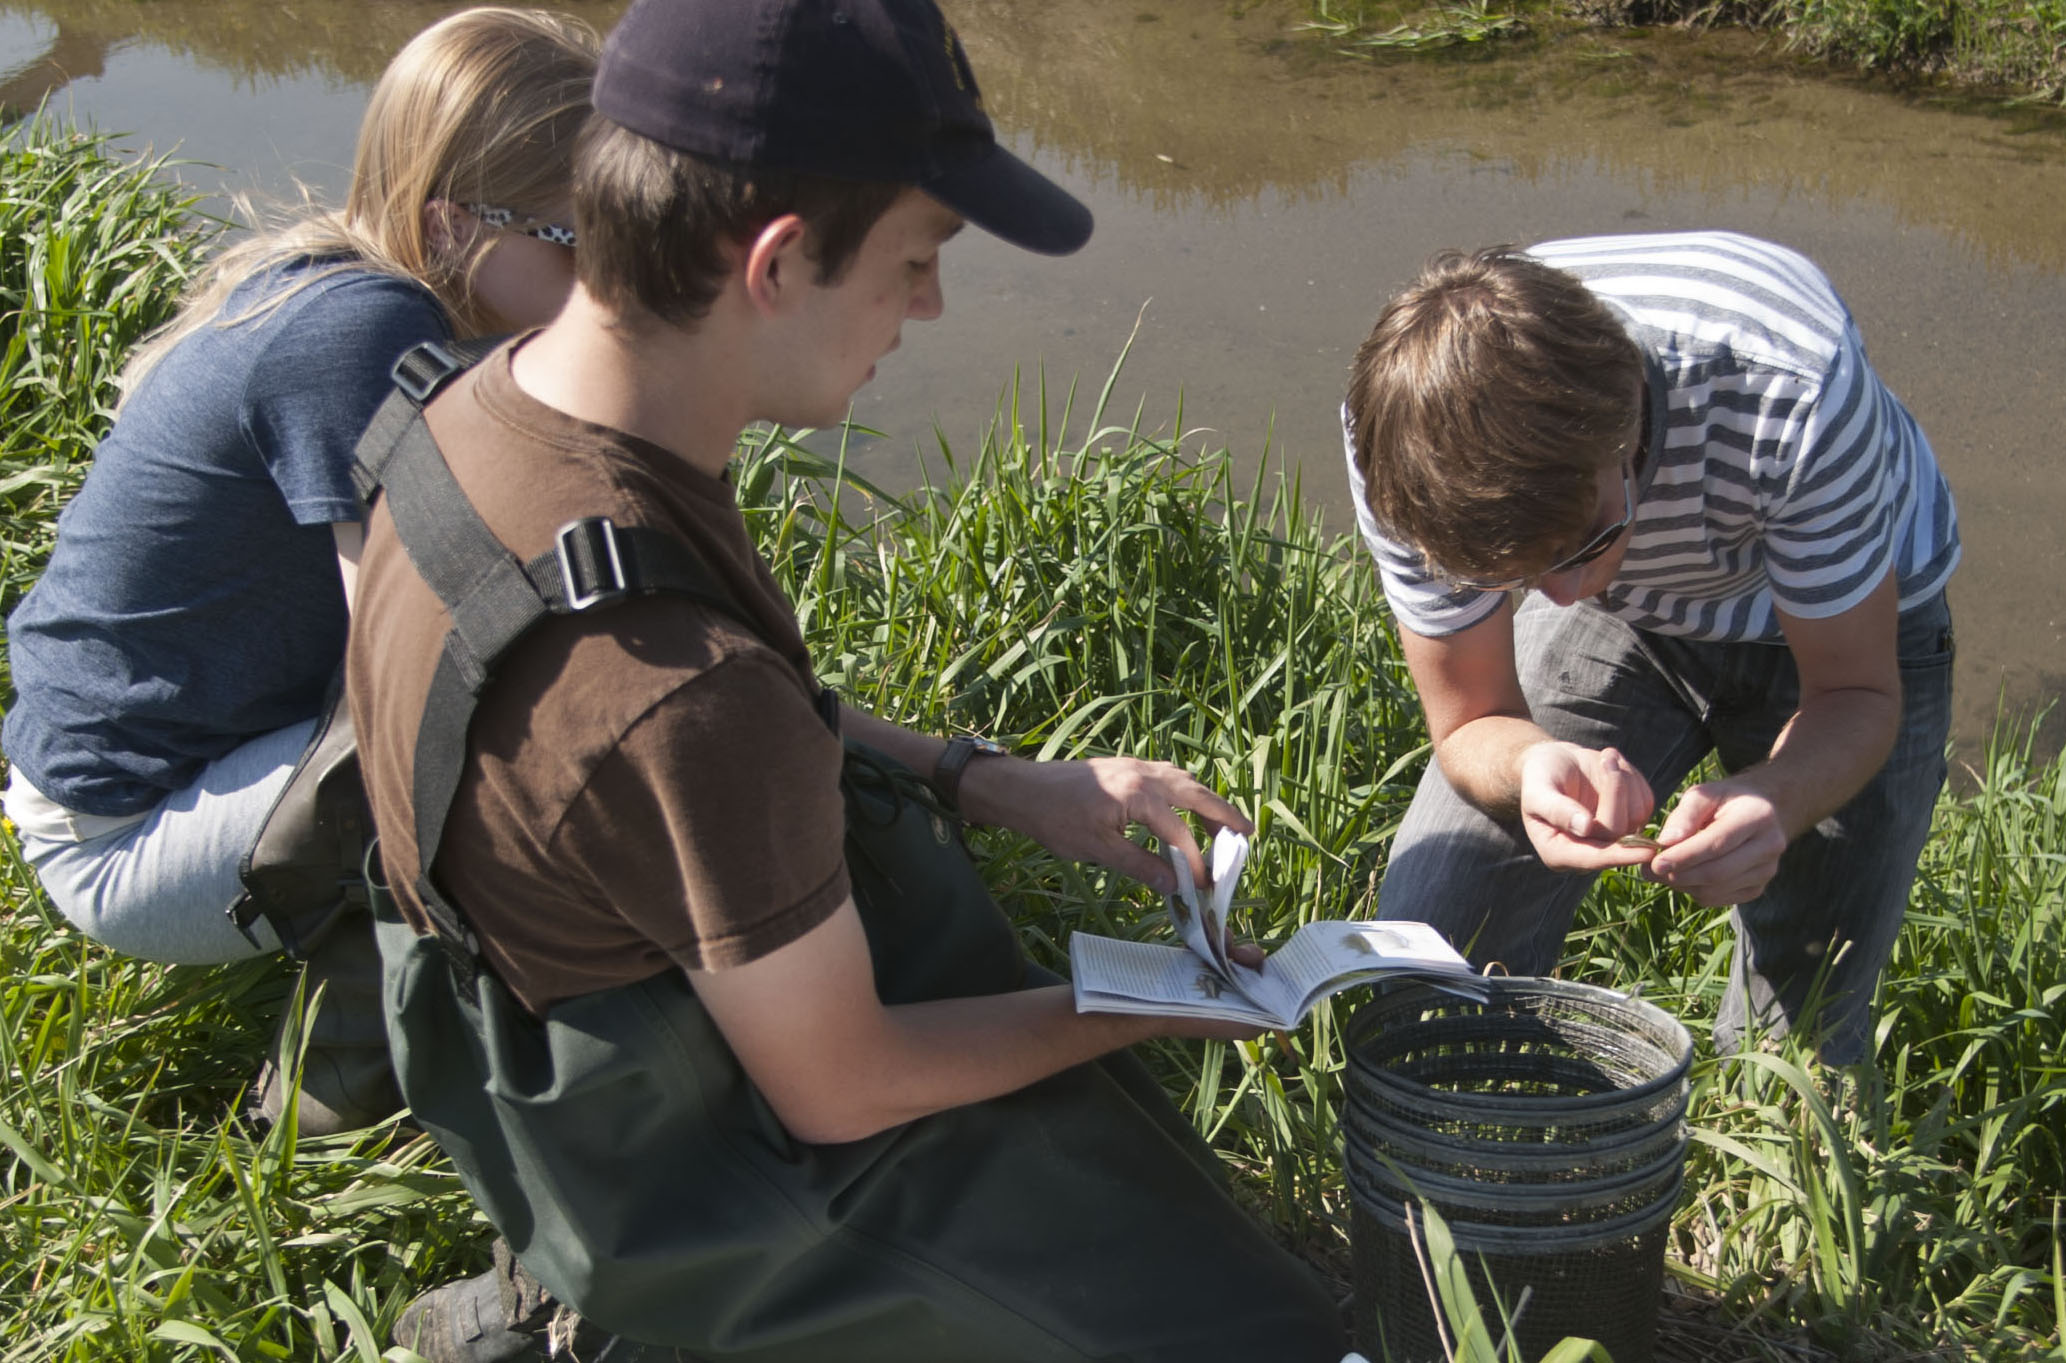 Environmental science students at Cedarville University will expand their research of Massie's Creek later this month.